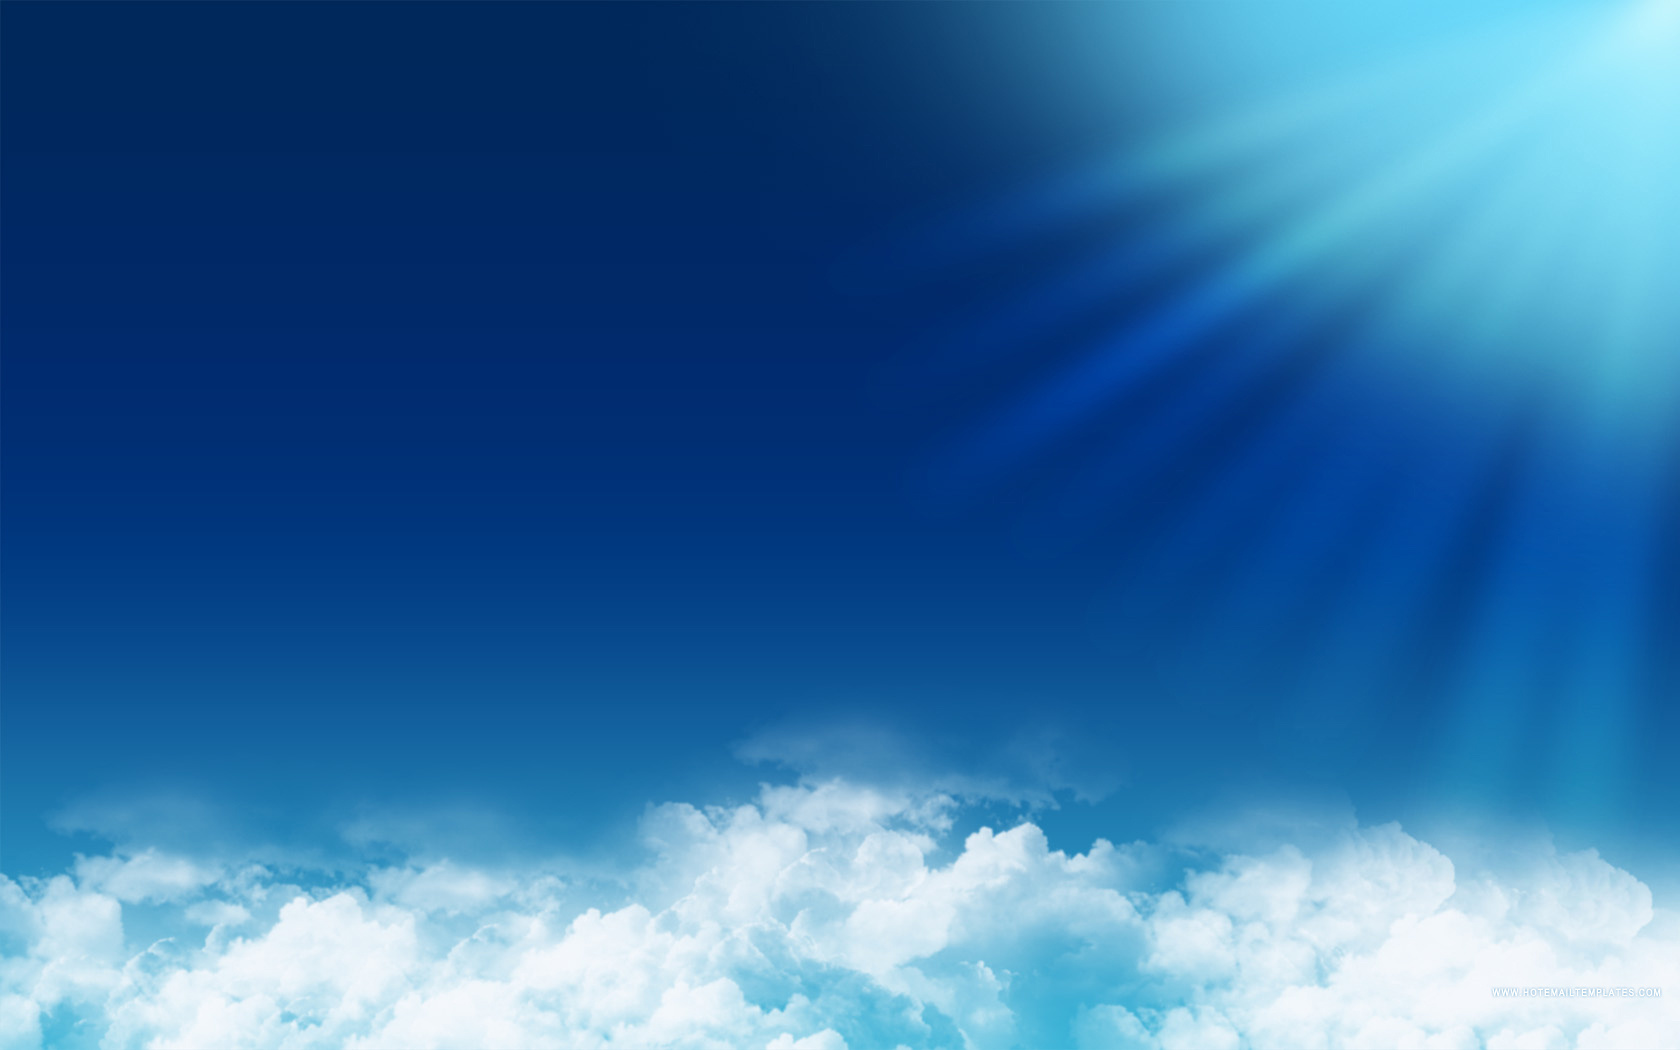 Sunny day blue sky background and white clouds Beautiful background created with Photoshop clouds brushes hires jpg file available for download